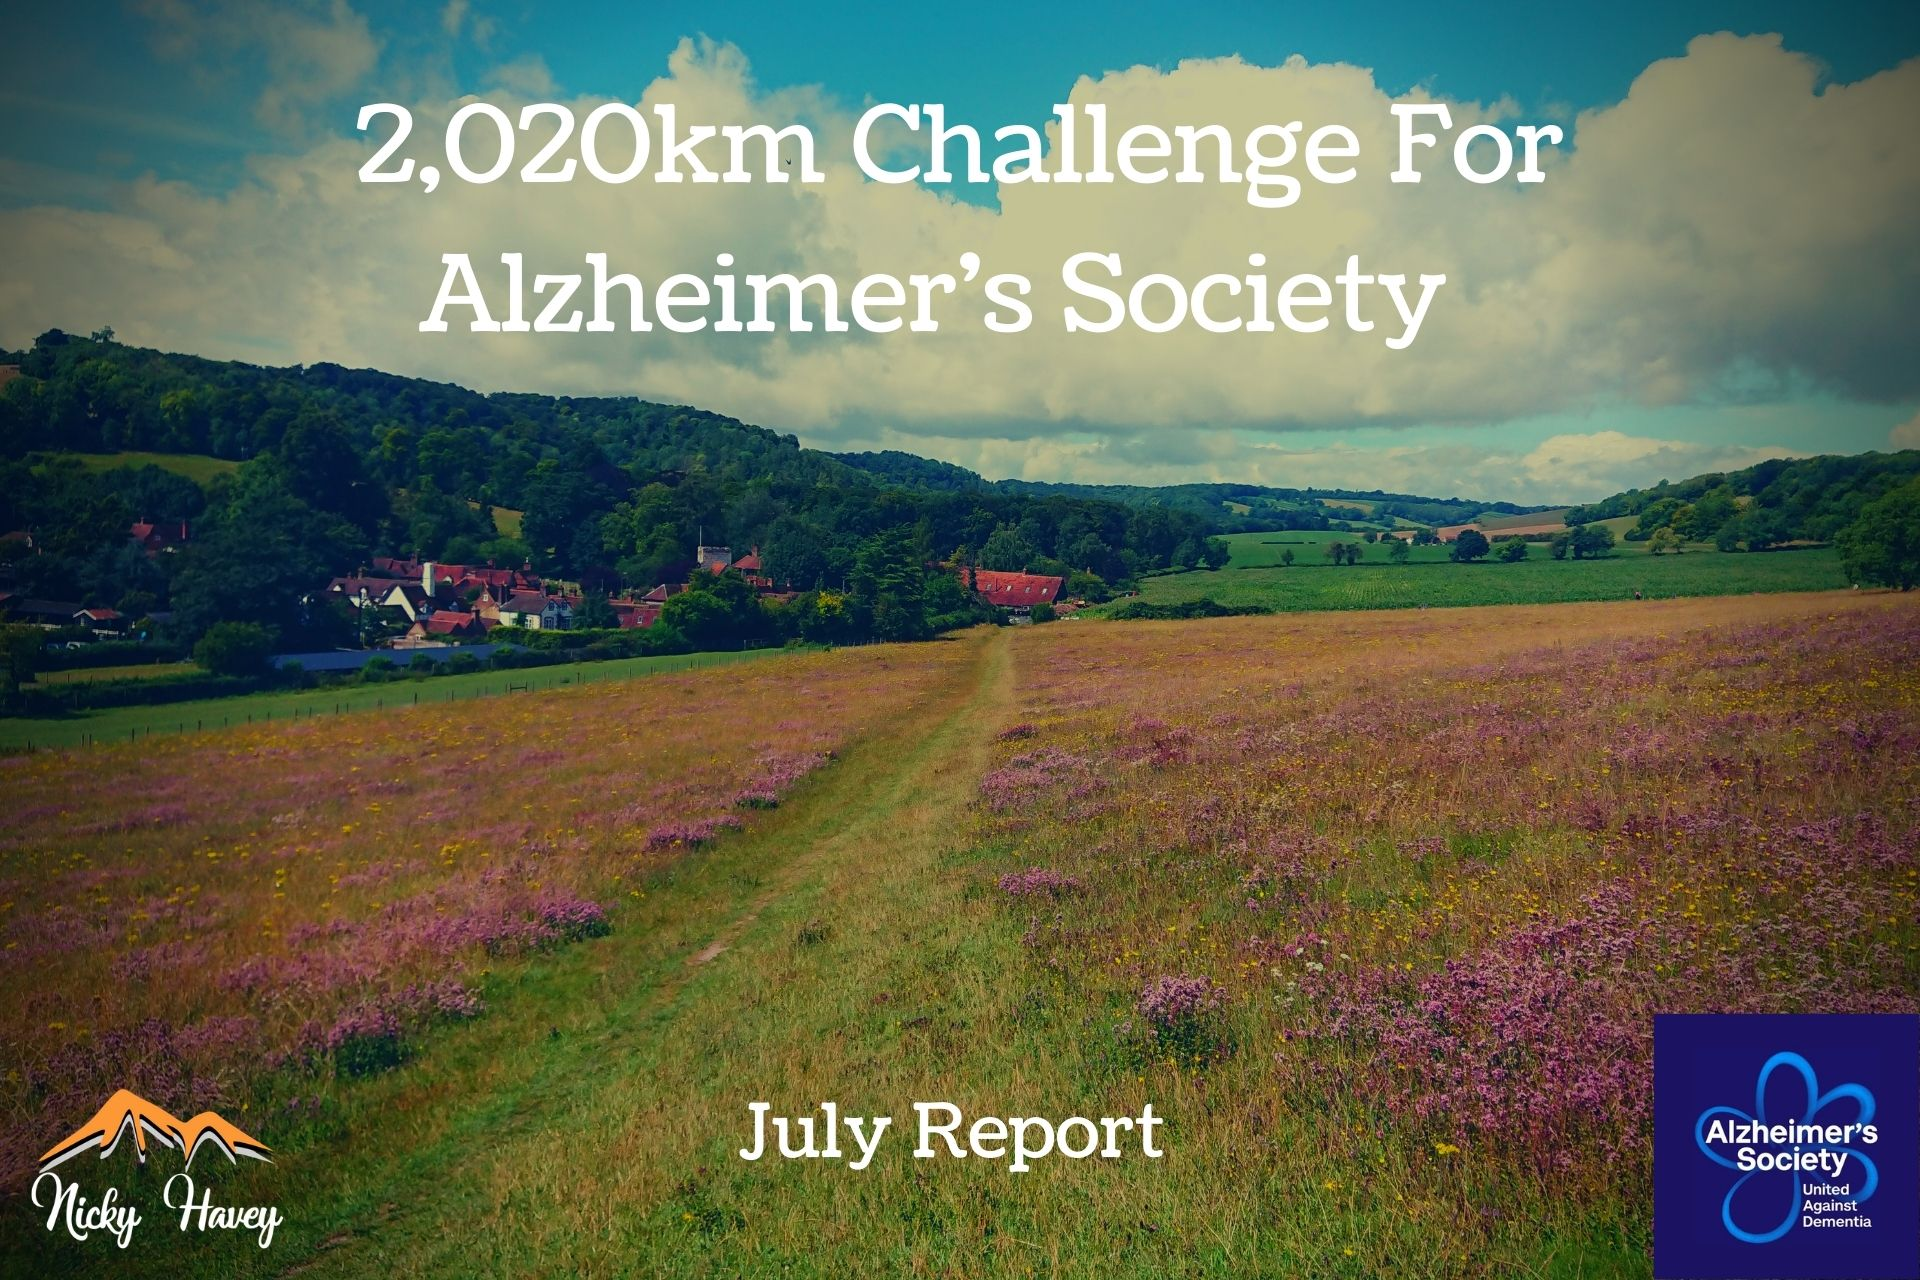 https://nickyhavey.co.uk/nh/wp-content/uploads/2020/08/2020km-Challenge-July-Report.jpg